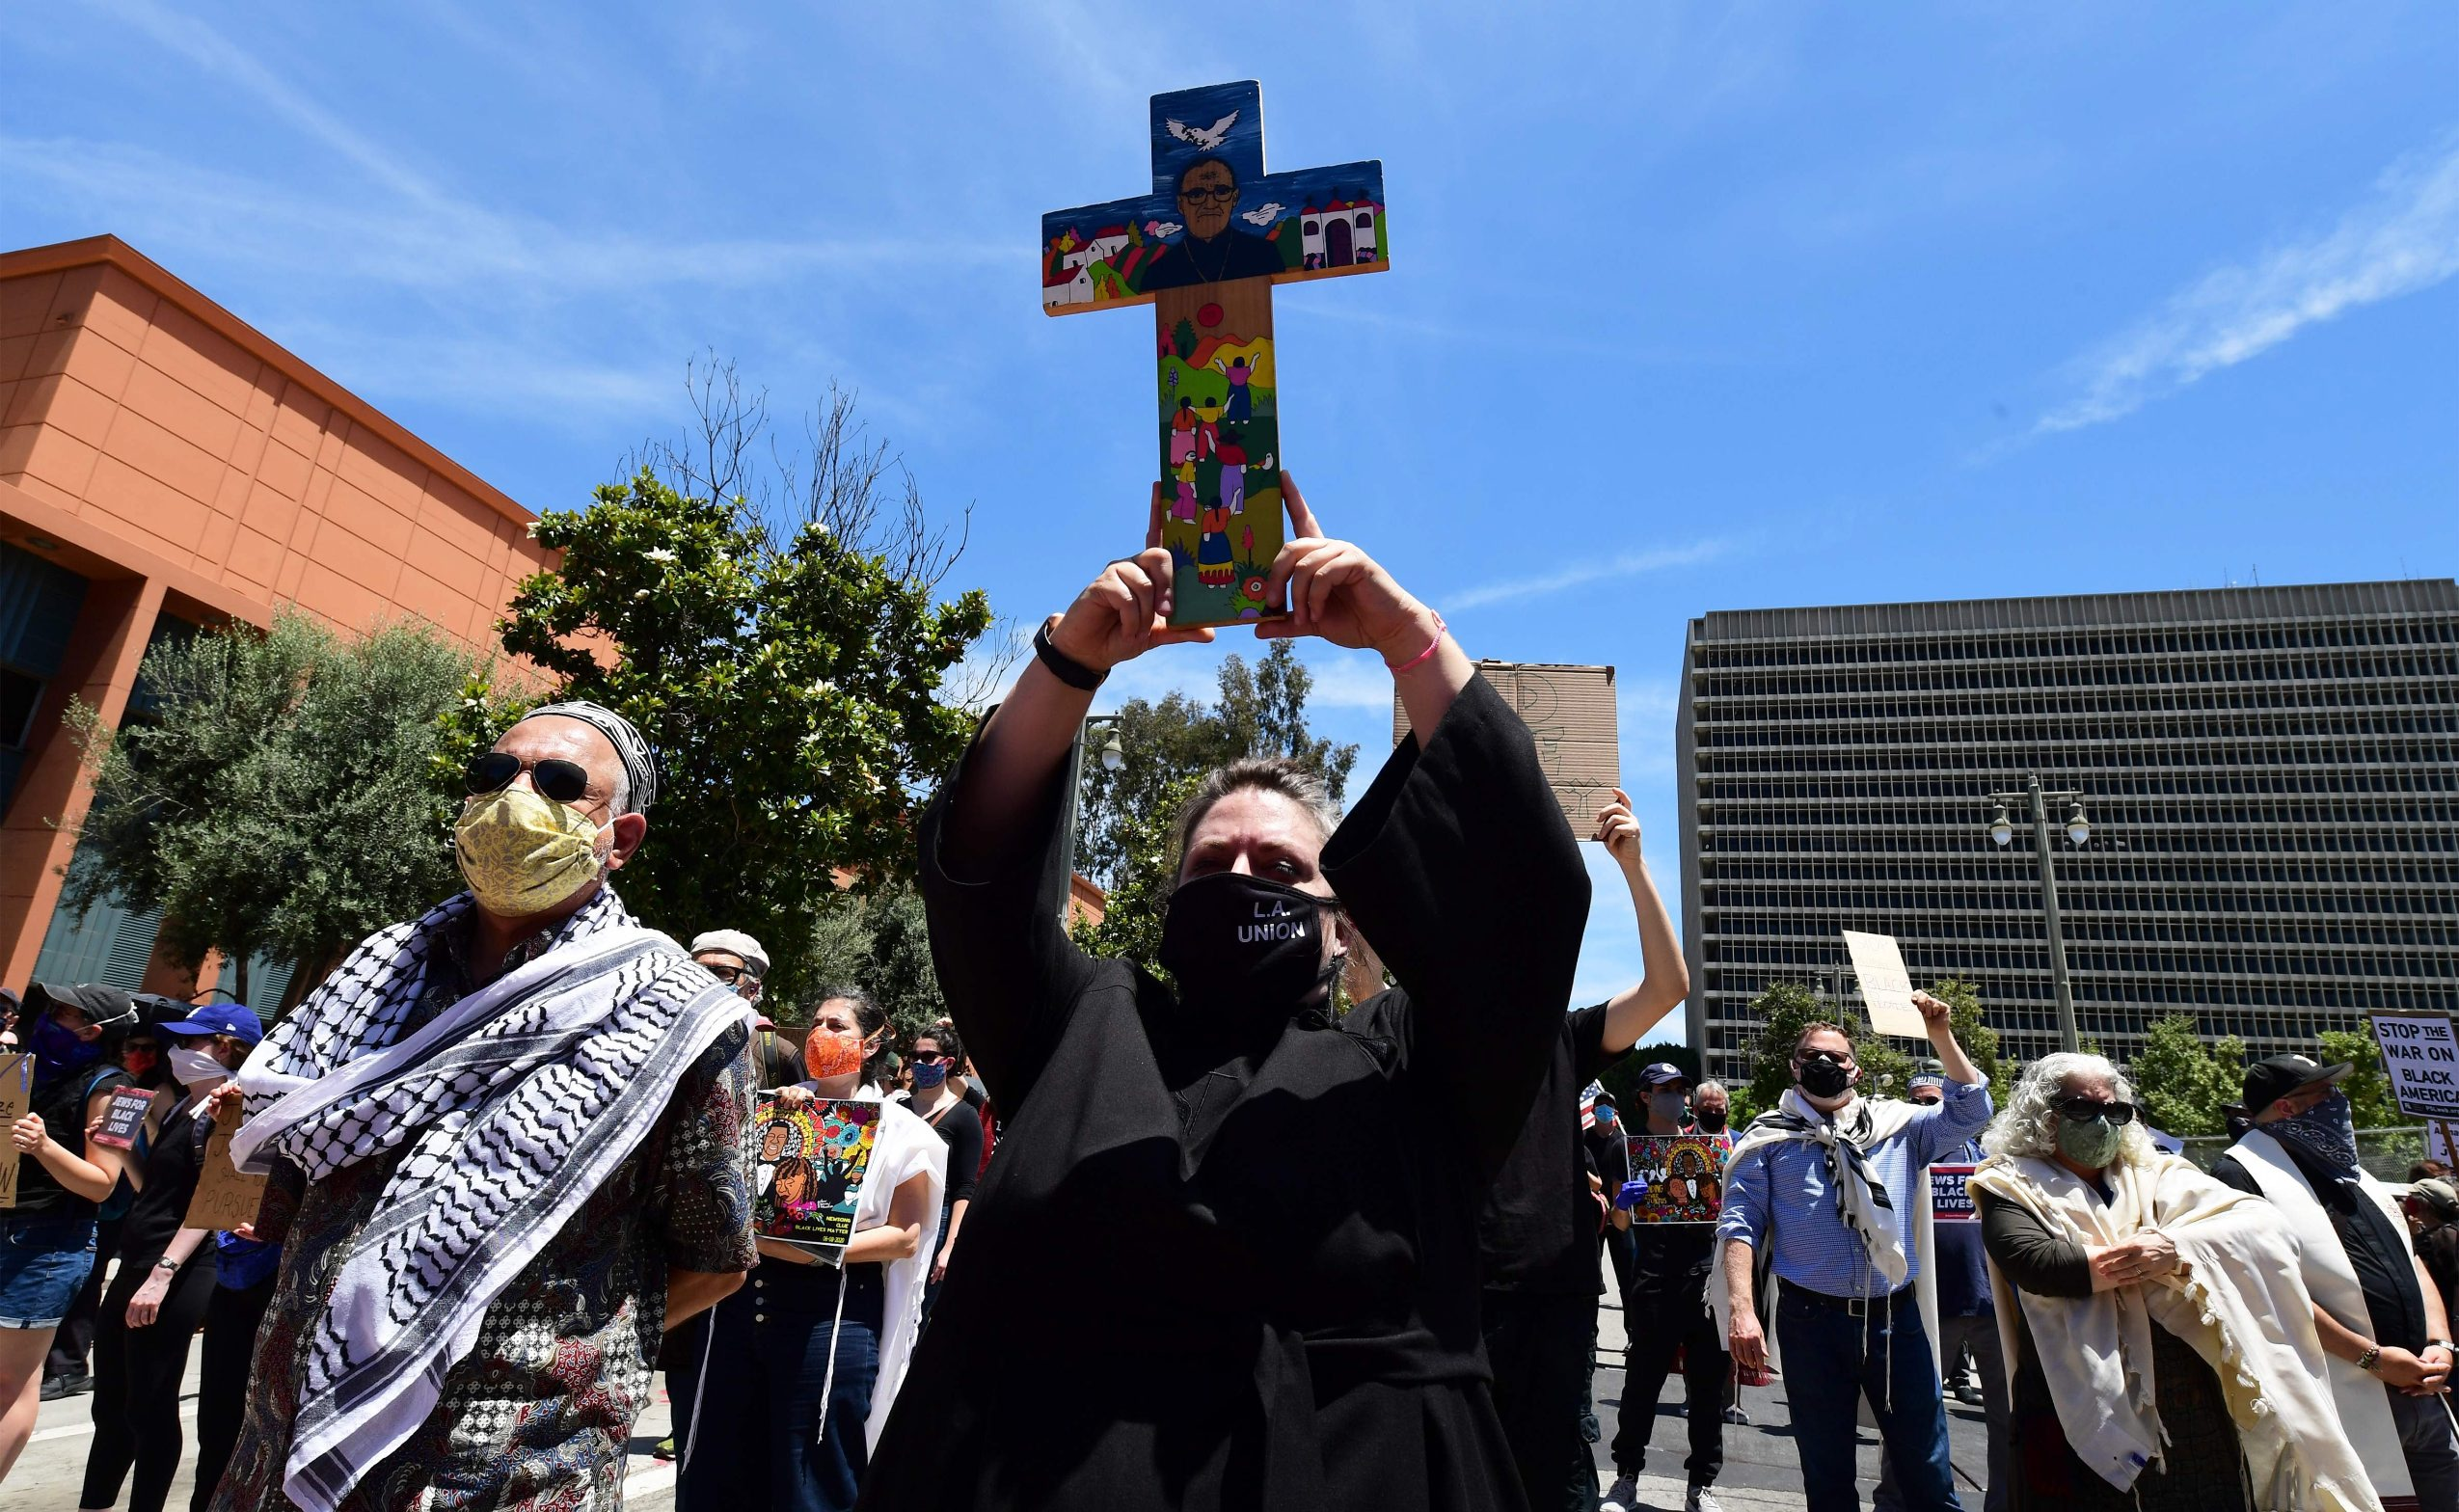 TOPSHOT - Pastor Bridie Roberts from the Hollywood United Methodist Church holds up a cross while joining Interfaith leaders and others during a memorial service honoring George Floyd and demanding justice for those killed at the hands of the police in downtown Los Angeles, California, on June 8, 2020. - Demonstrations continued across the nation as protesters began focusing their initial outrage over the death of the unarmed Floyd into demands for police reform and social justice. (Photo by Frederic J. BROWN / AFP)